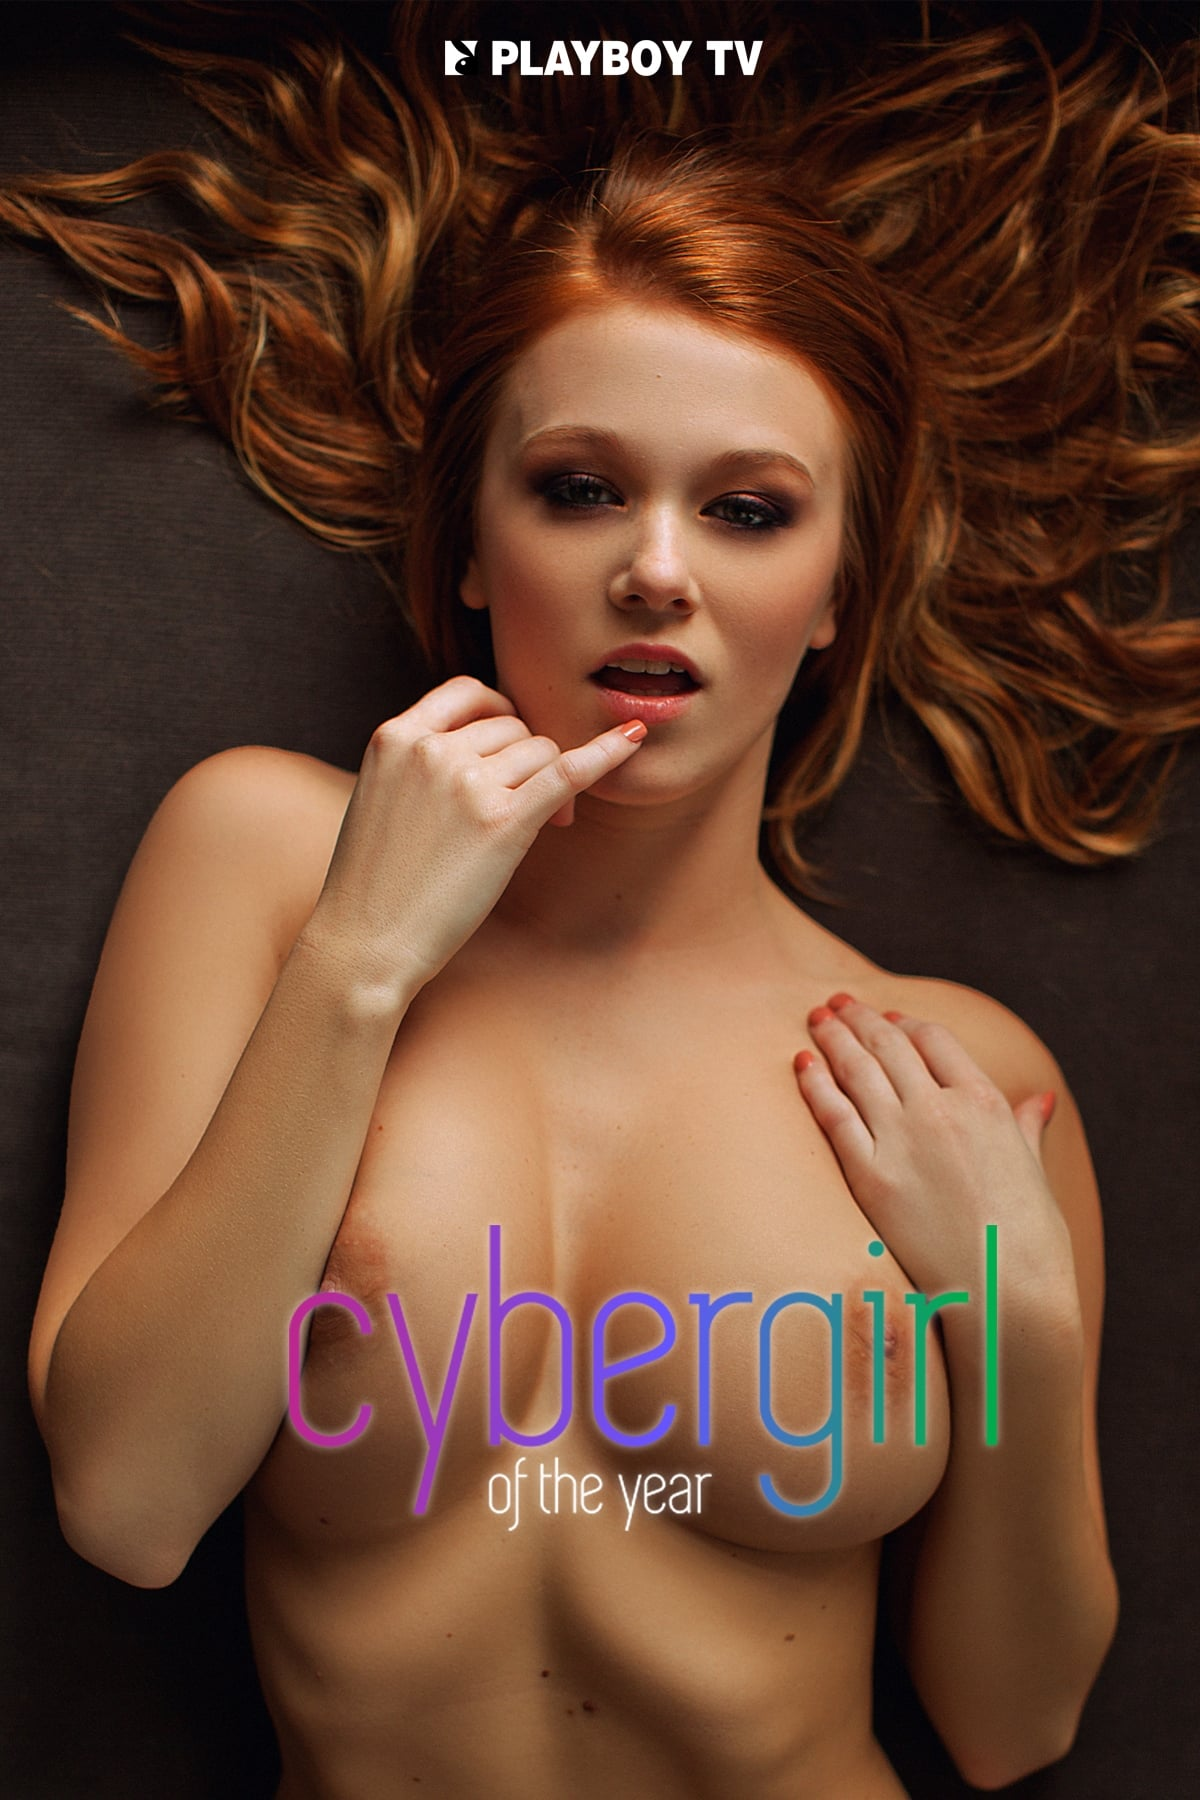 Cybergirl of the Year Poster